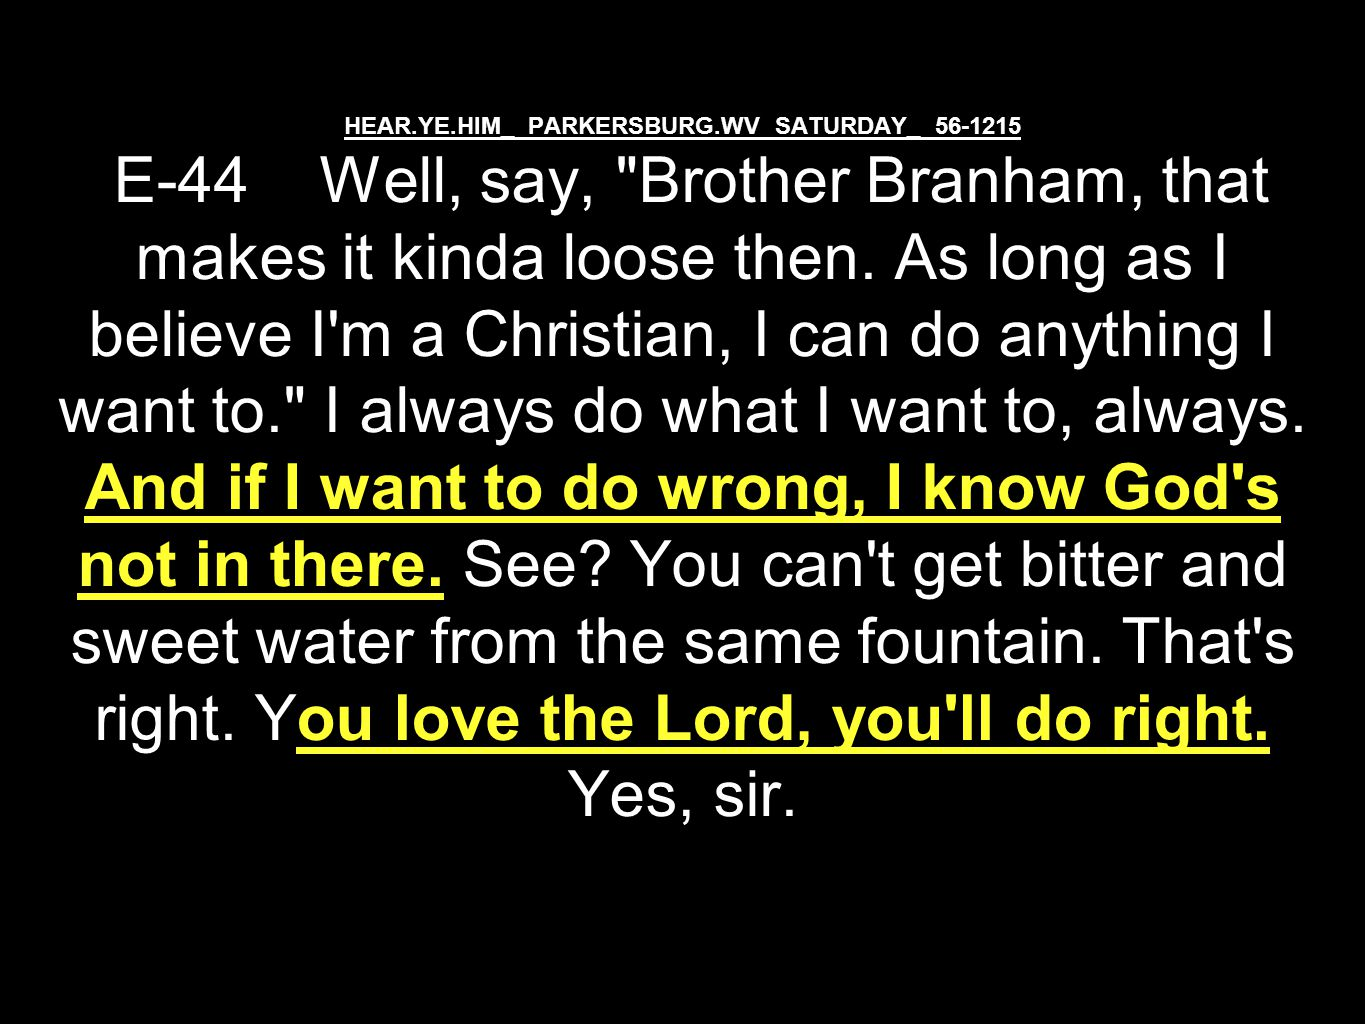 HEAR.YE.HIM_ PARKERSBURG.WV SATURDAY_ 56-1215 E-44 Well, say, Brother Branham, that makes it kinda loose then.